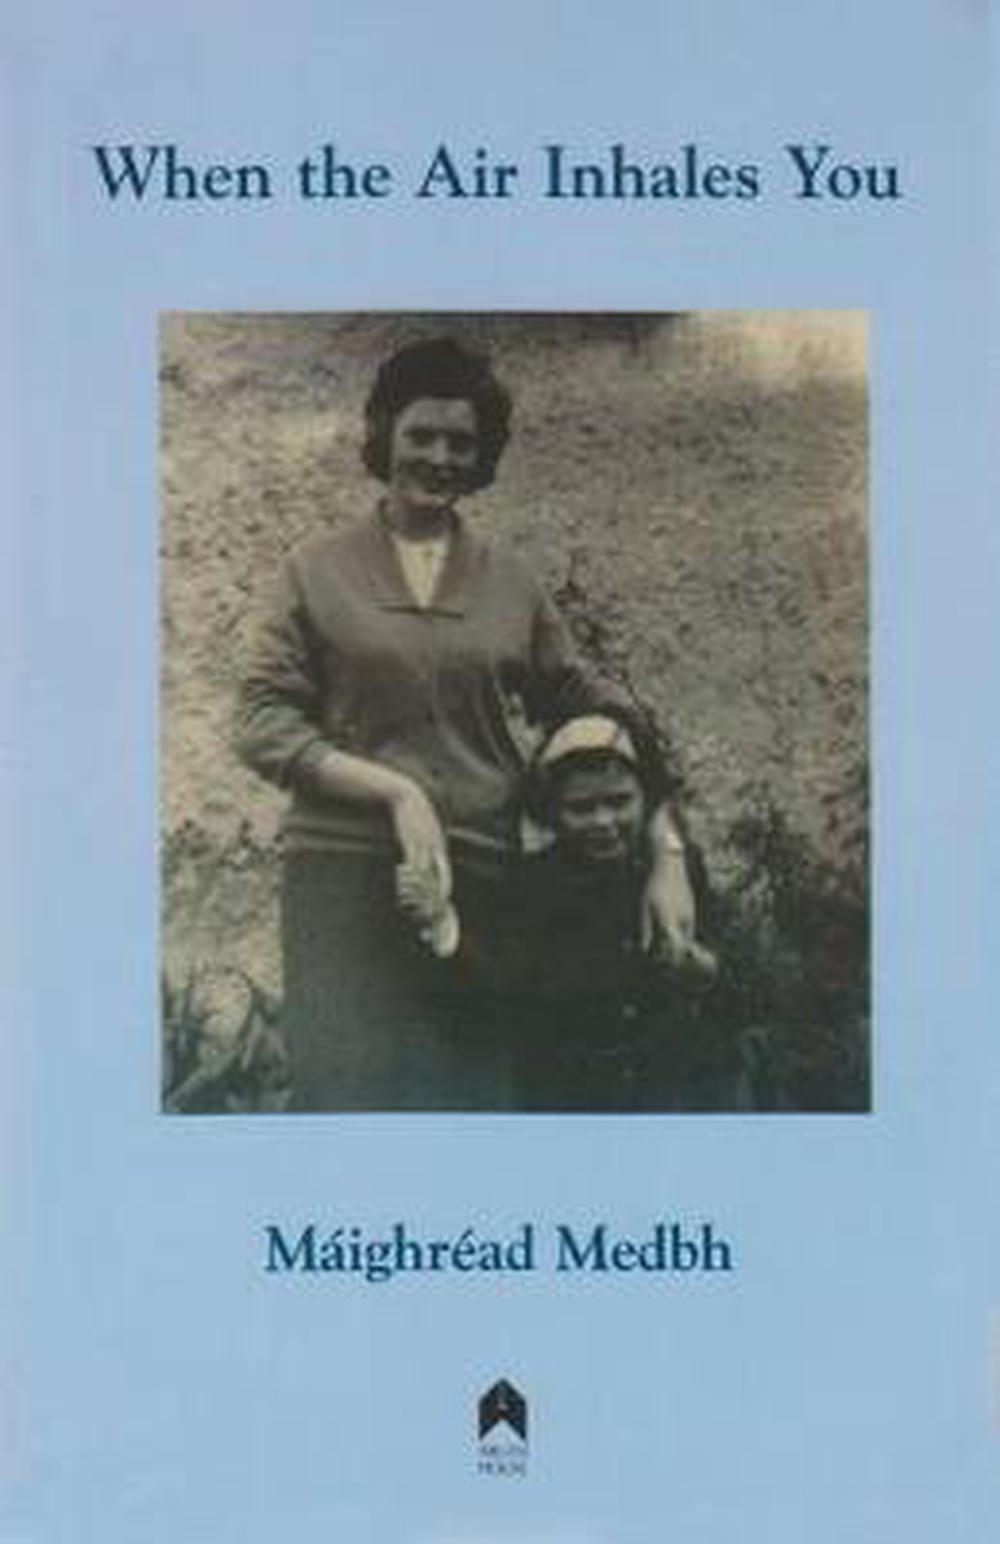 When the Air Inhales You by Maighread Medbh (English) Paperback Book Free Shippi